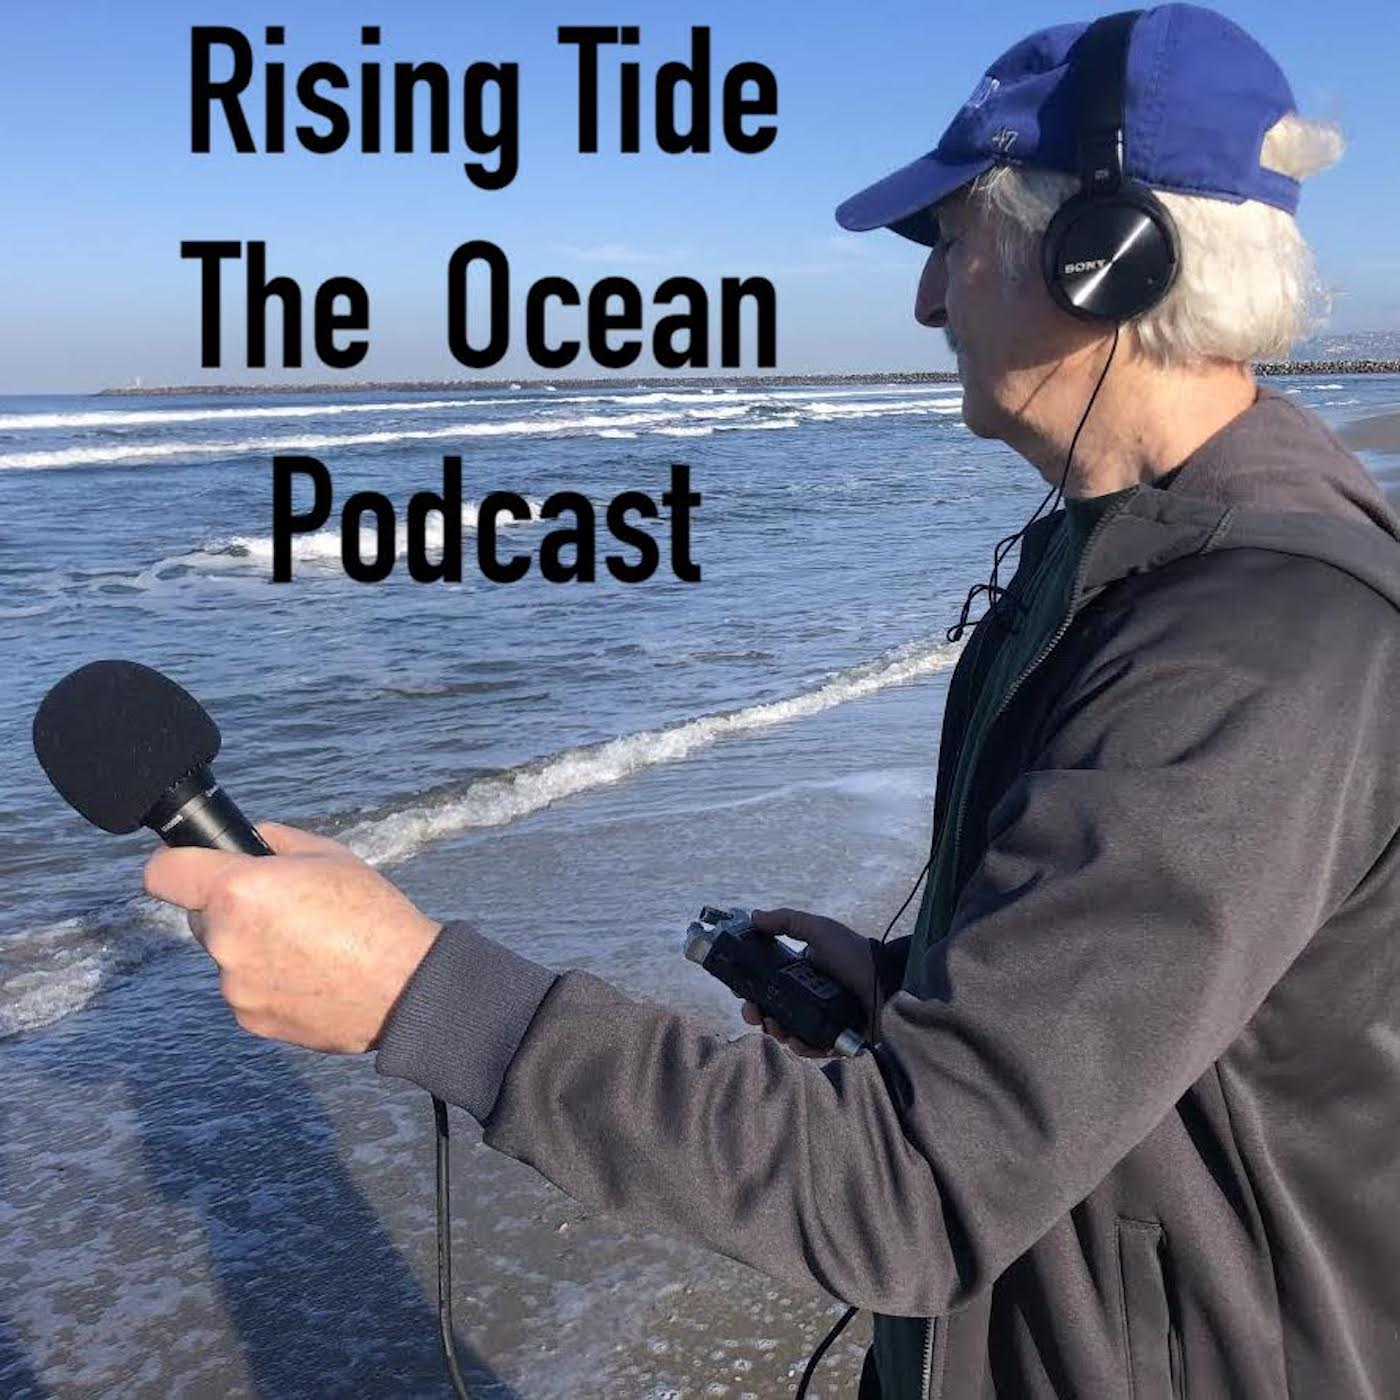 Rising Tide: The Ocean Podcast